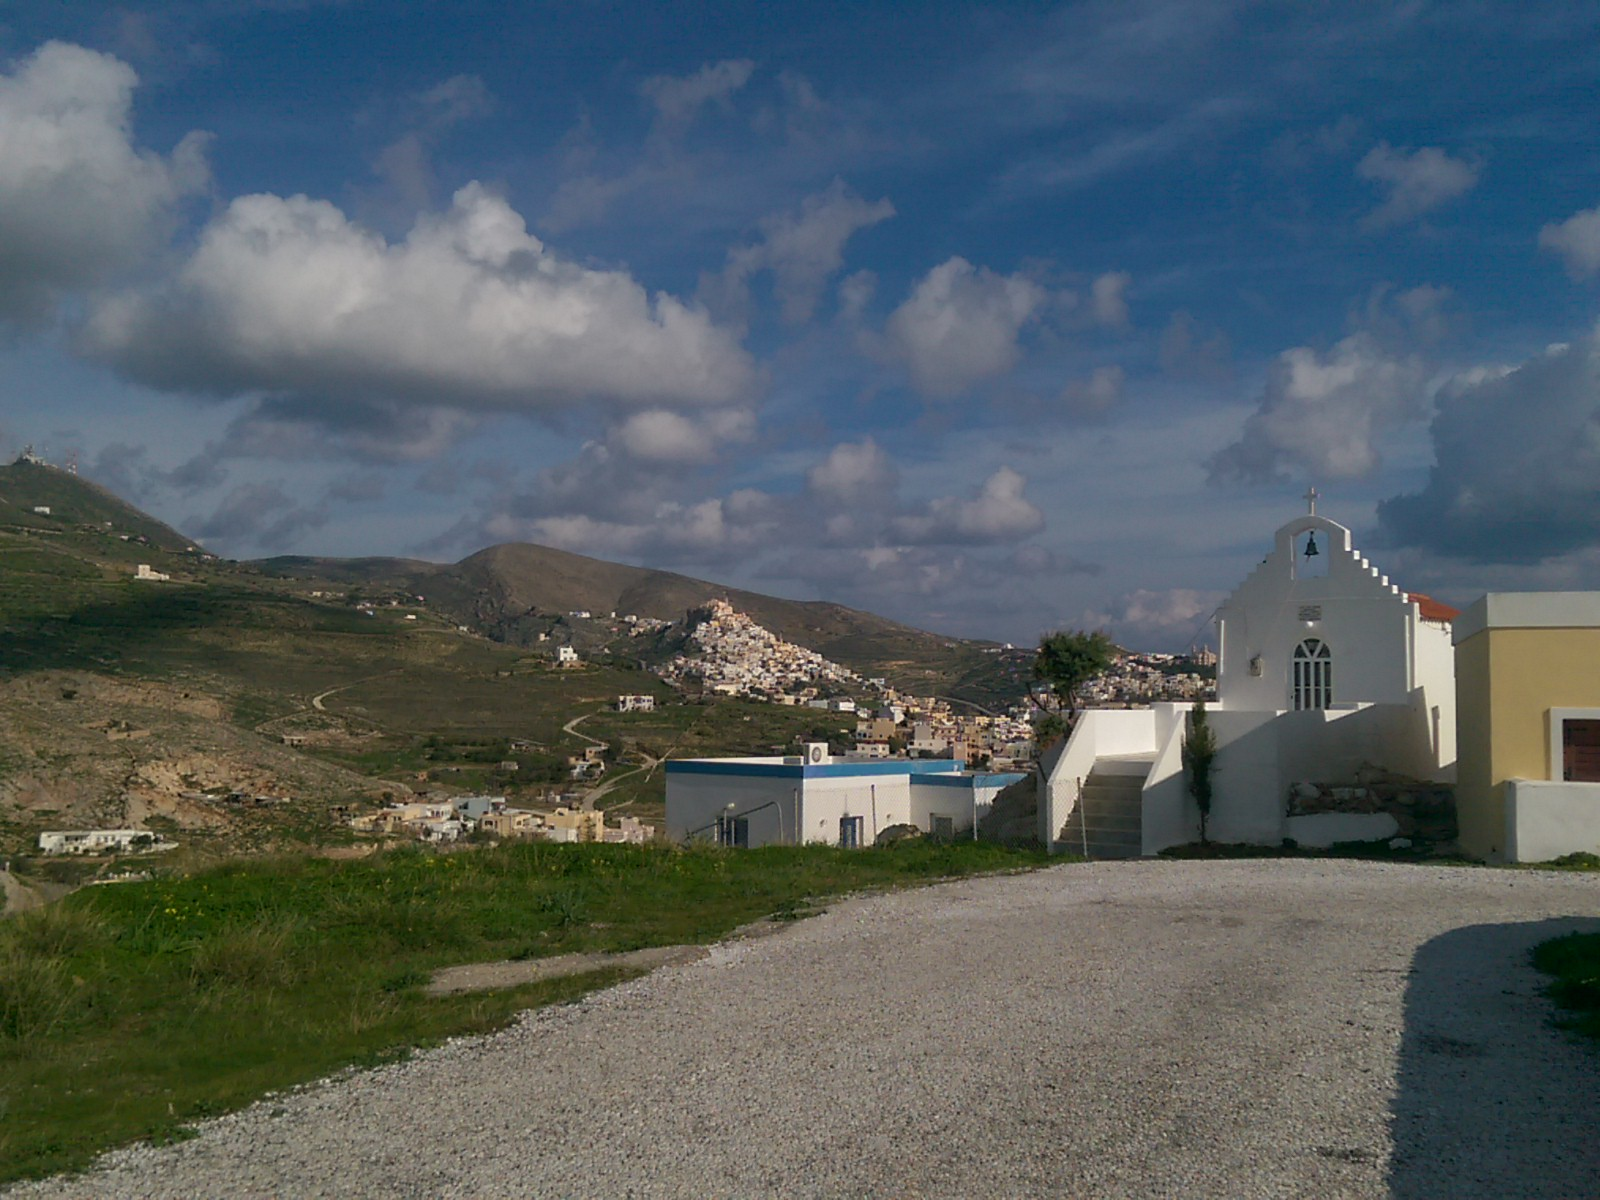 A concrete road leads to a small white church with a bell; hills in the distance are half green, half covered white a white town